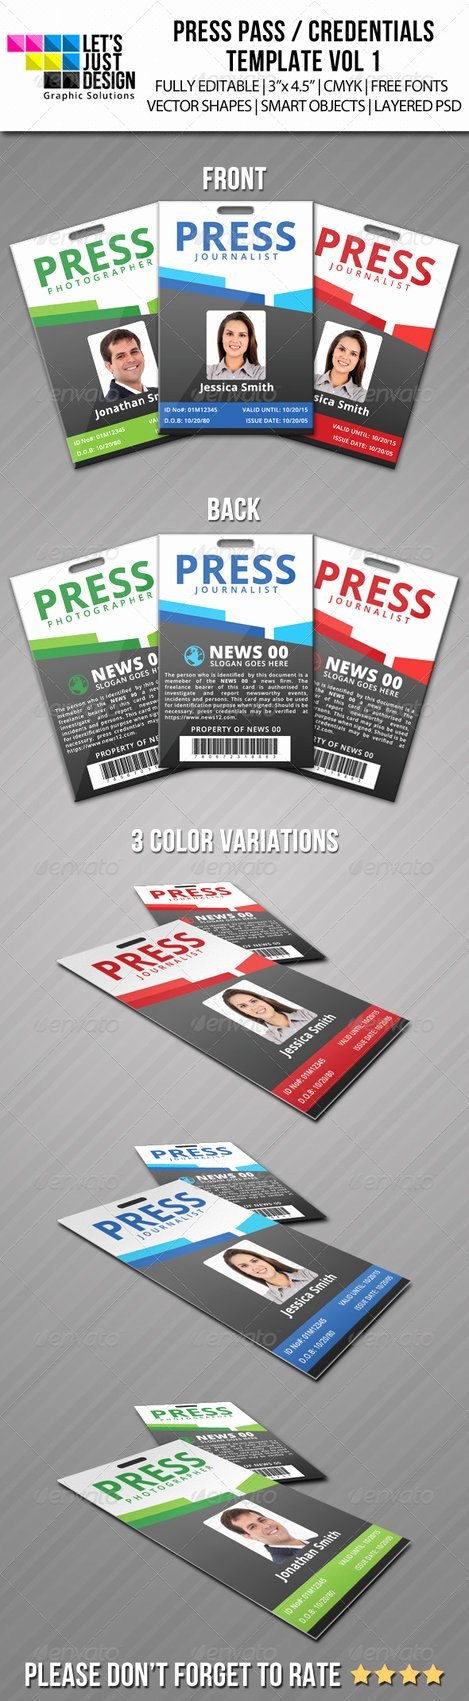 Press Pass Template Free New Press Pass Credentials Template Vol 1 by Jasonmendes On